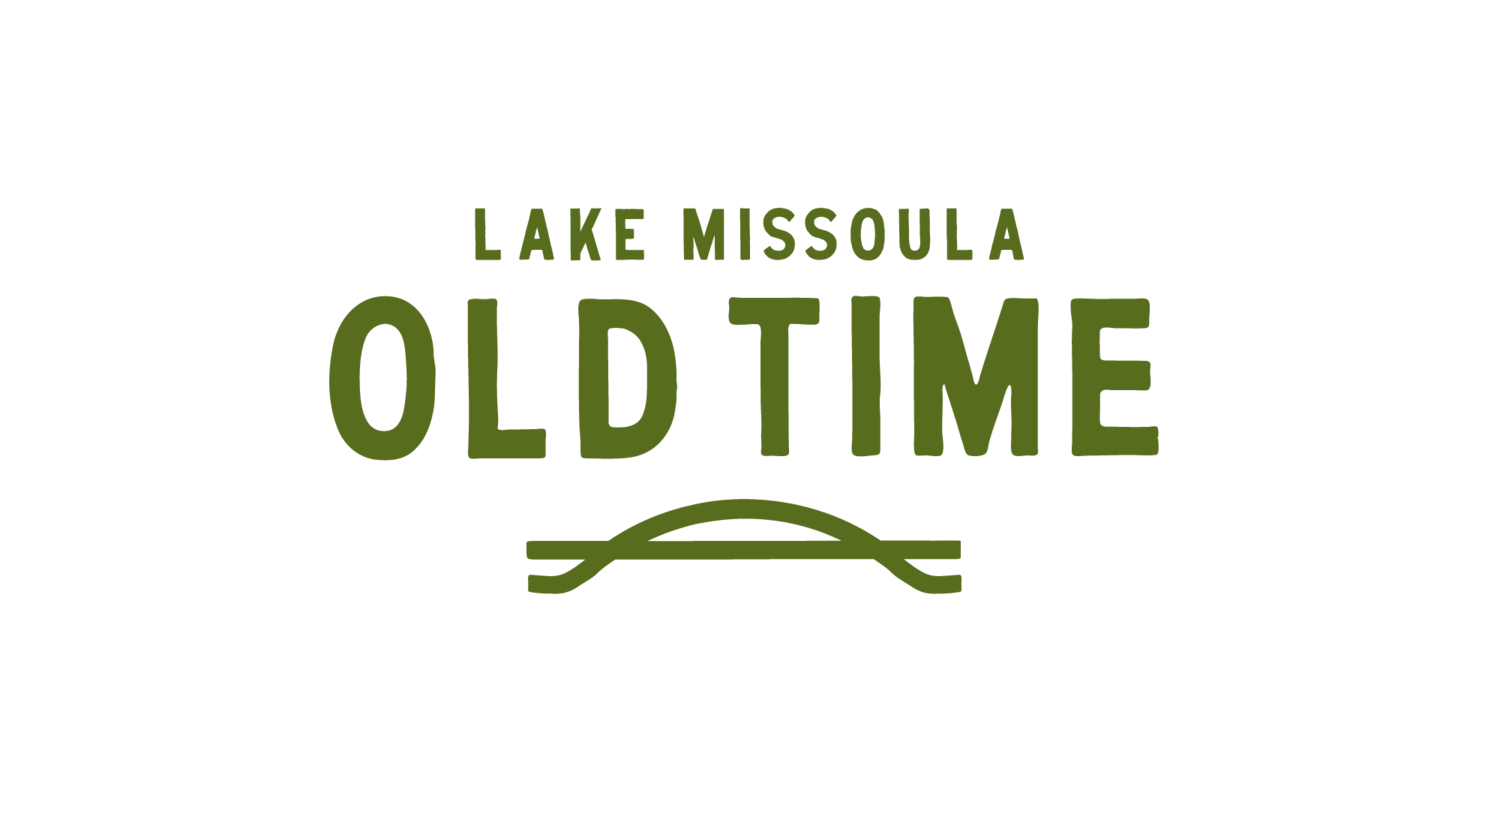 Lake Missoula Old Time